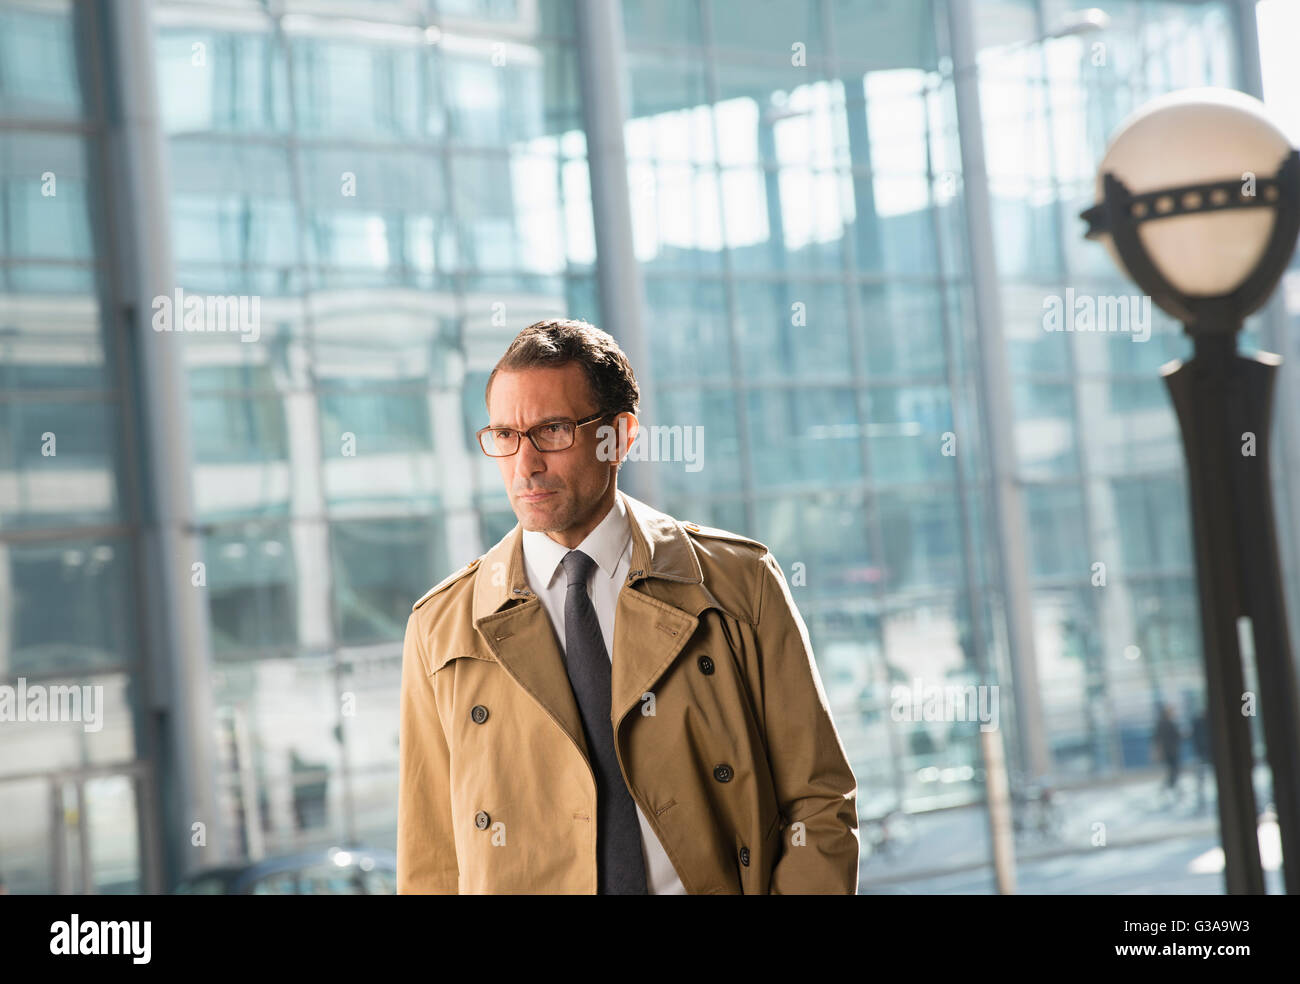 Corporate businessman in trench coat looking away - Stock Image